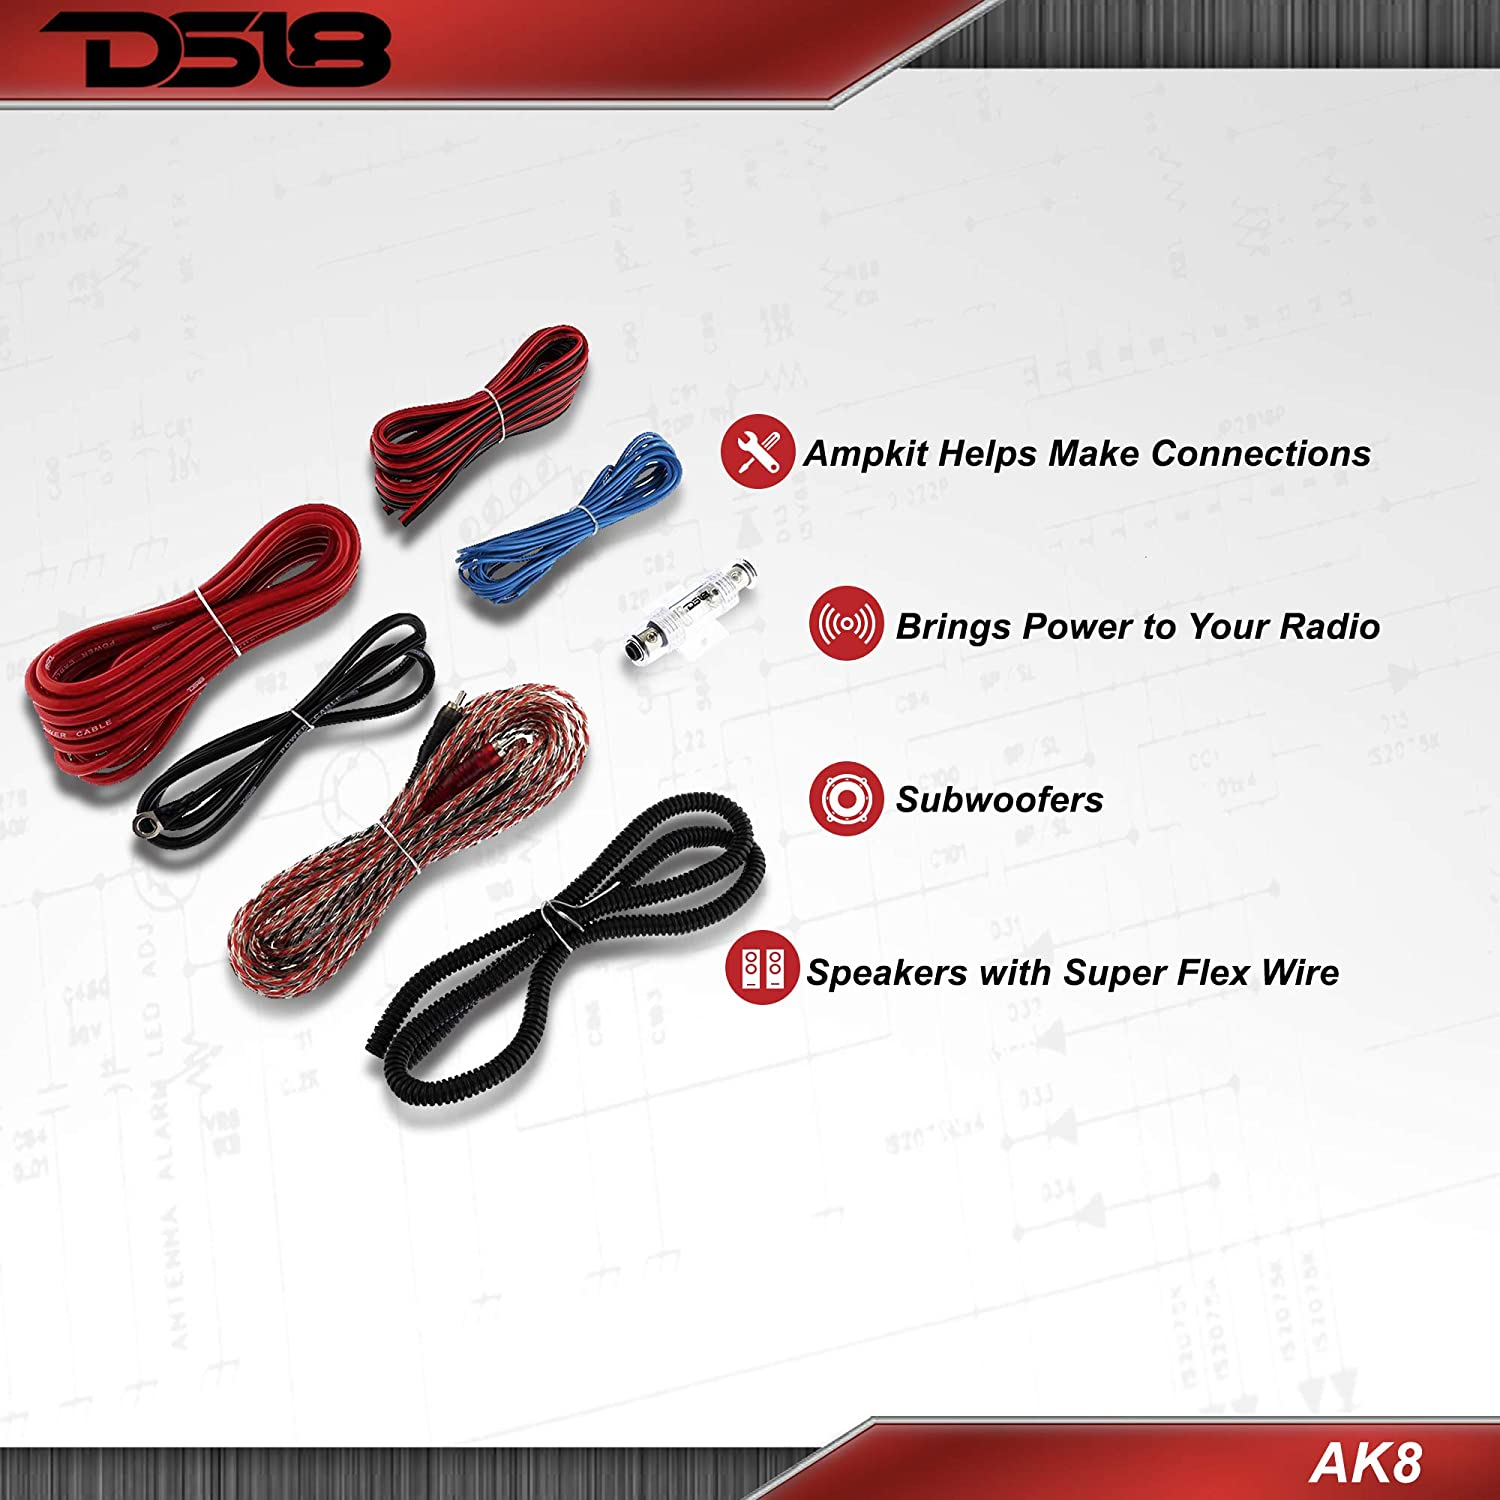 Brings Power to Your Radio Speakers with Super Flex Wire Subwoofers DS18 AK8 Complete 8 Gauge CCA Amplifier Installation Wiring Kit Ampkit Helps Make Connections 960W for 1 Amplifier